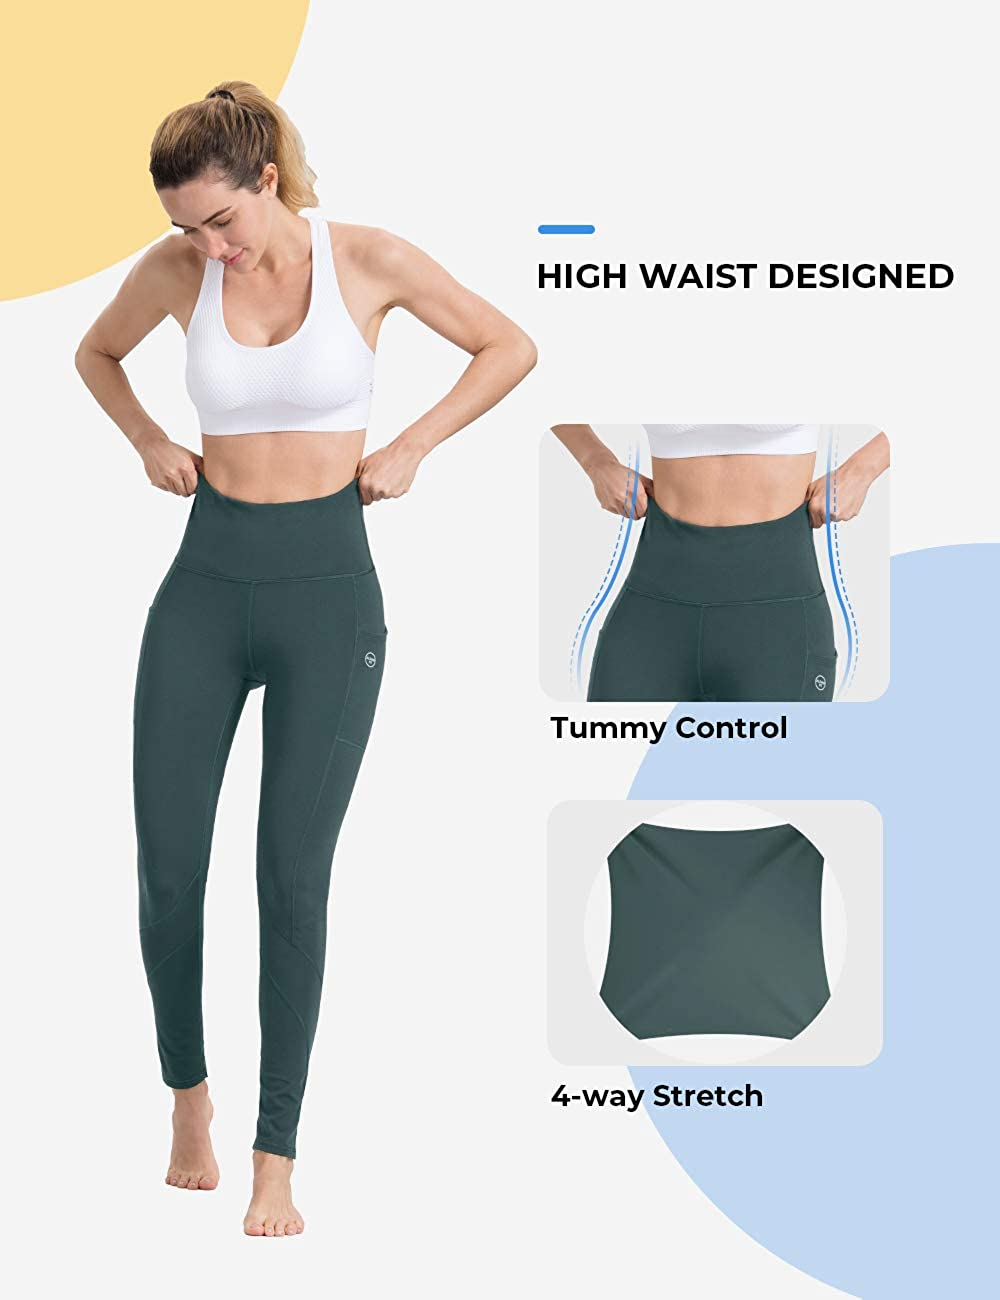 Womens Tummy Control Yoga Pants High Waist Workout Elastic Fitness Sports Leggings I613 Yoga Pants with Pockets